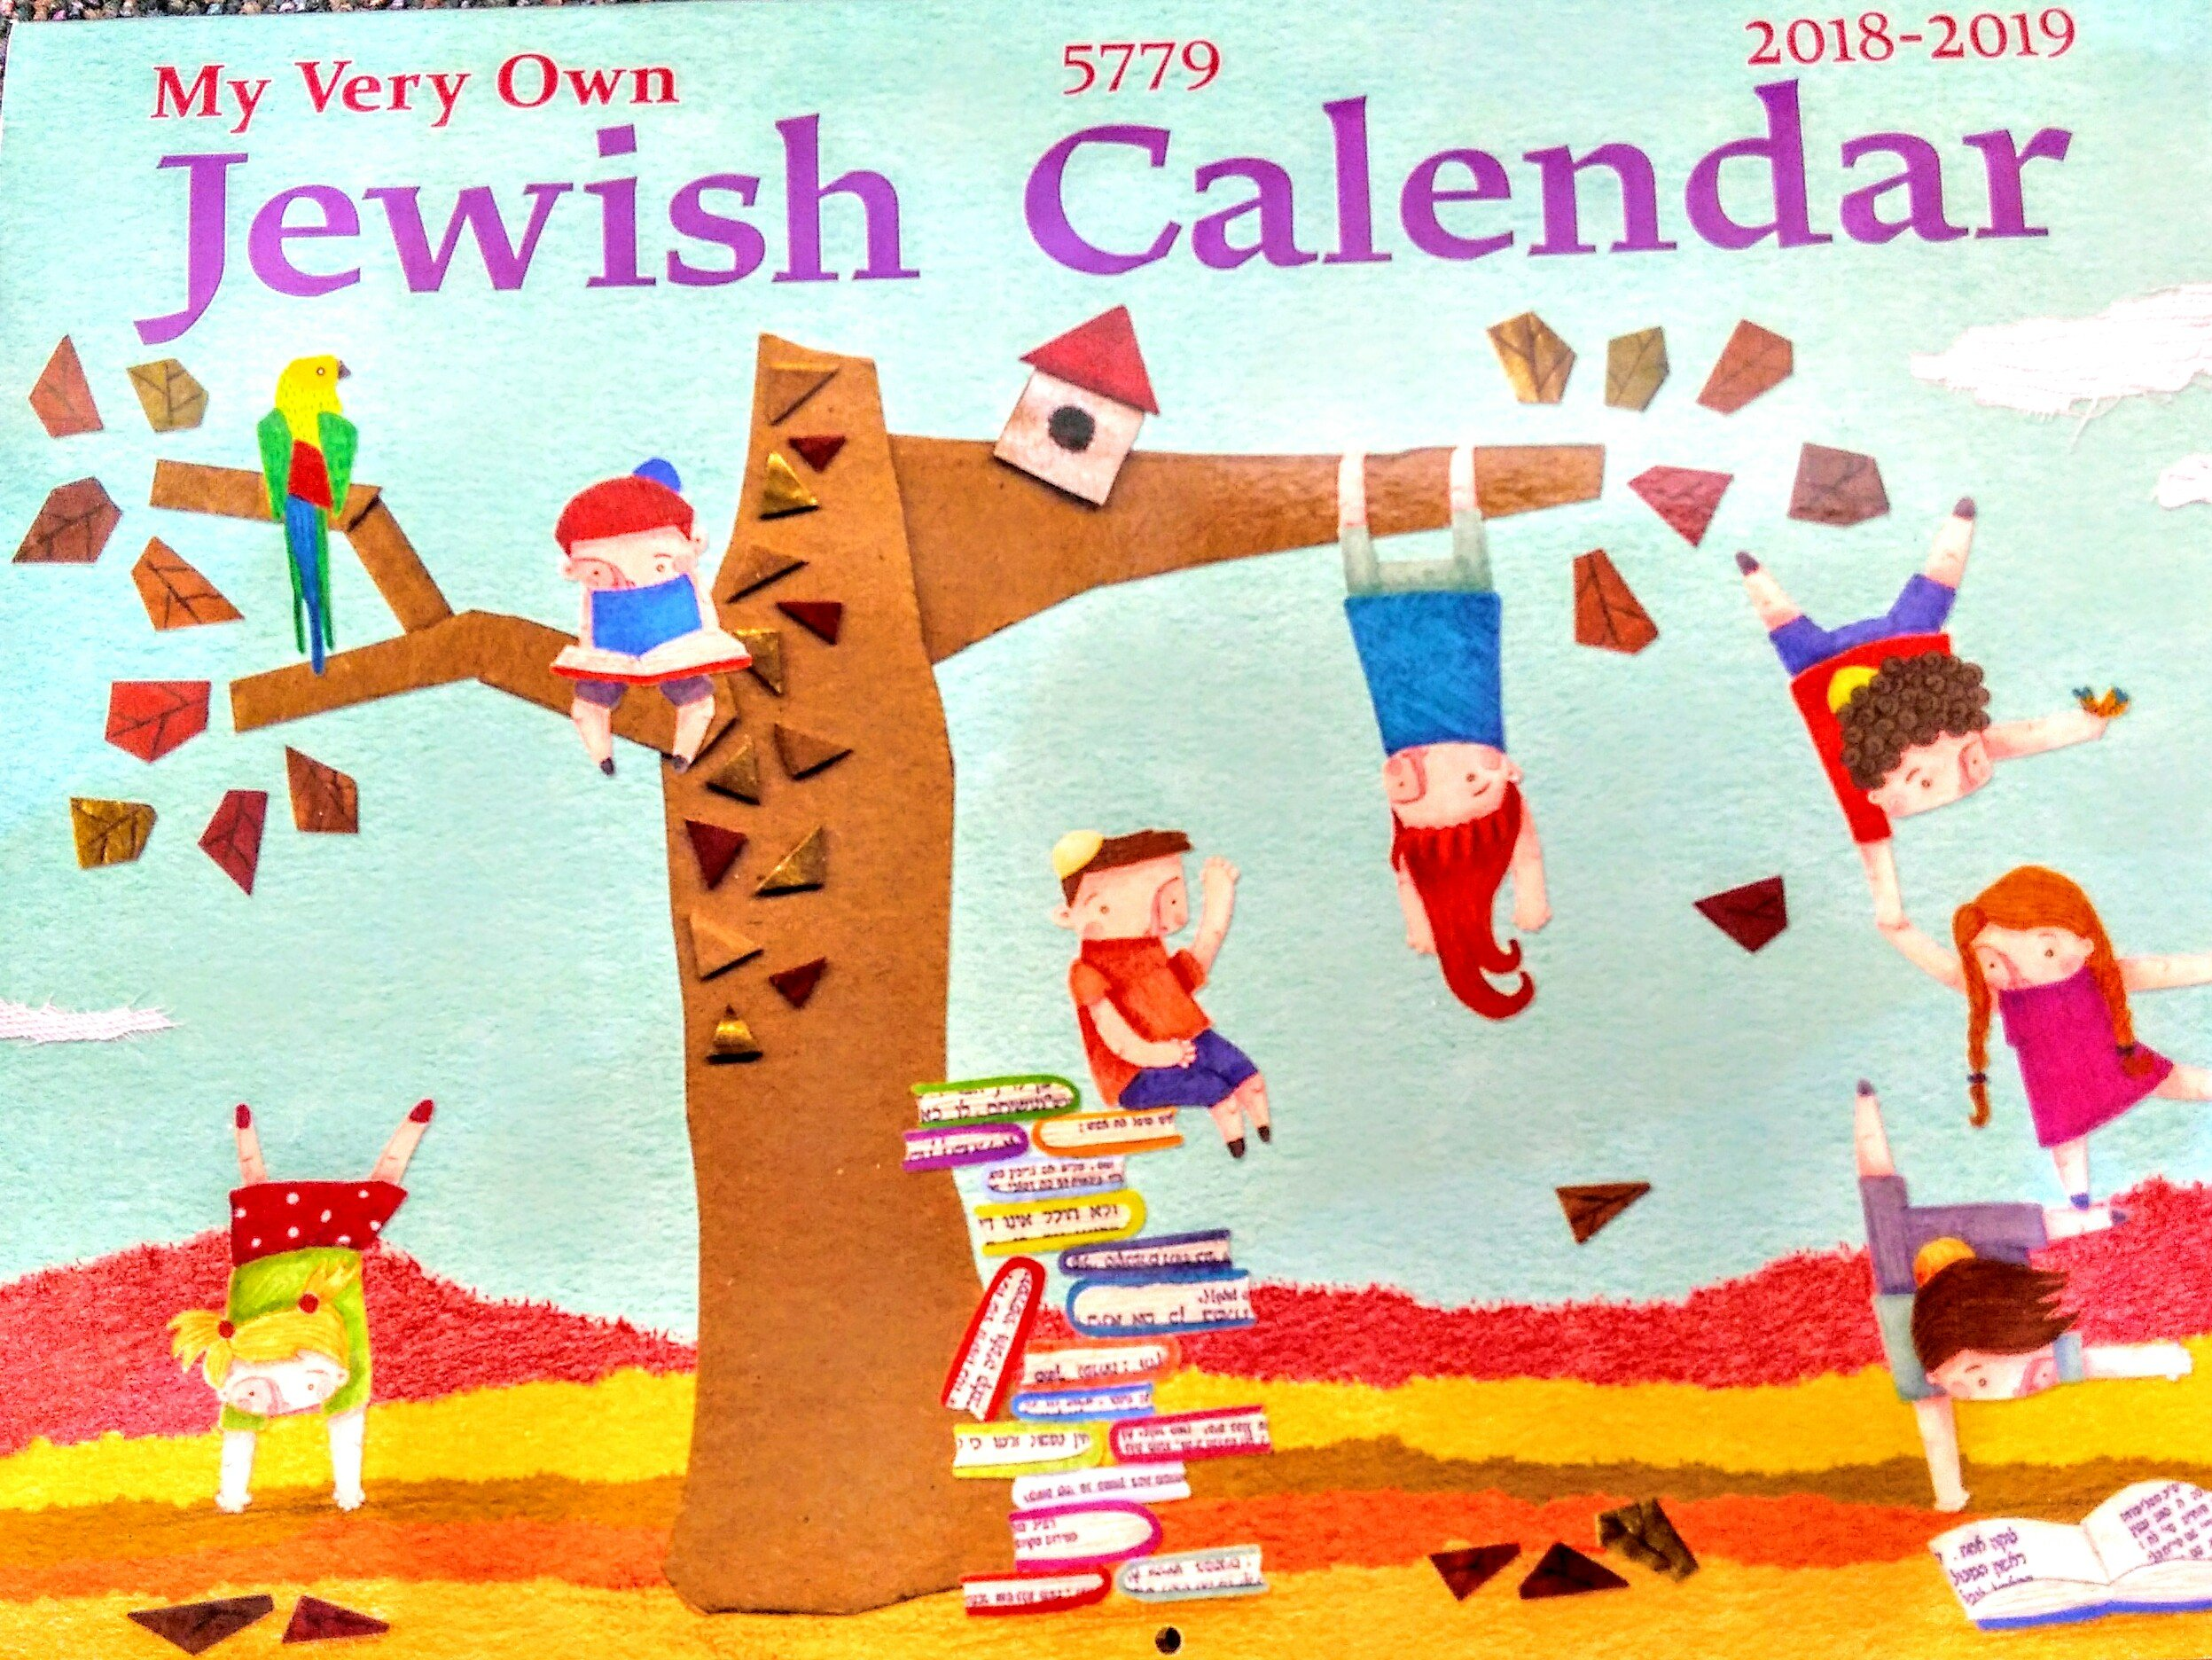 Jewish Calendar Year 2019 With My Very Own 5779 2018 9781512497892 Amazon